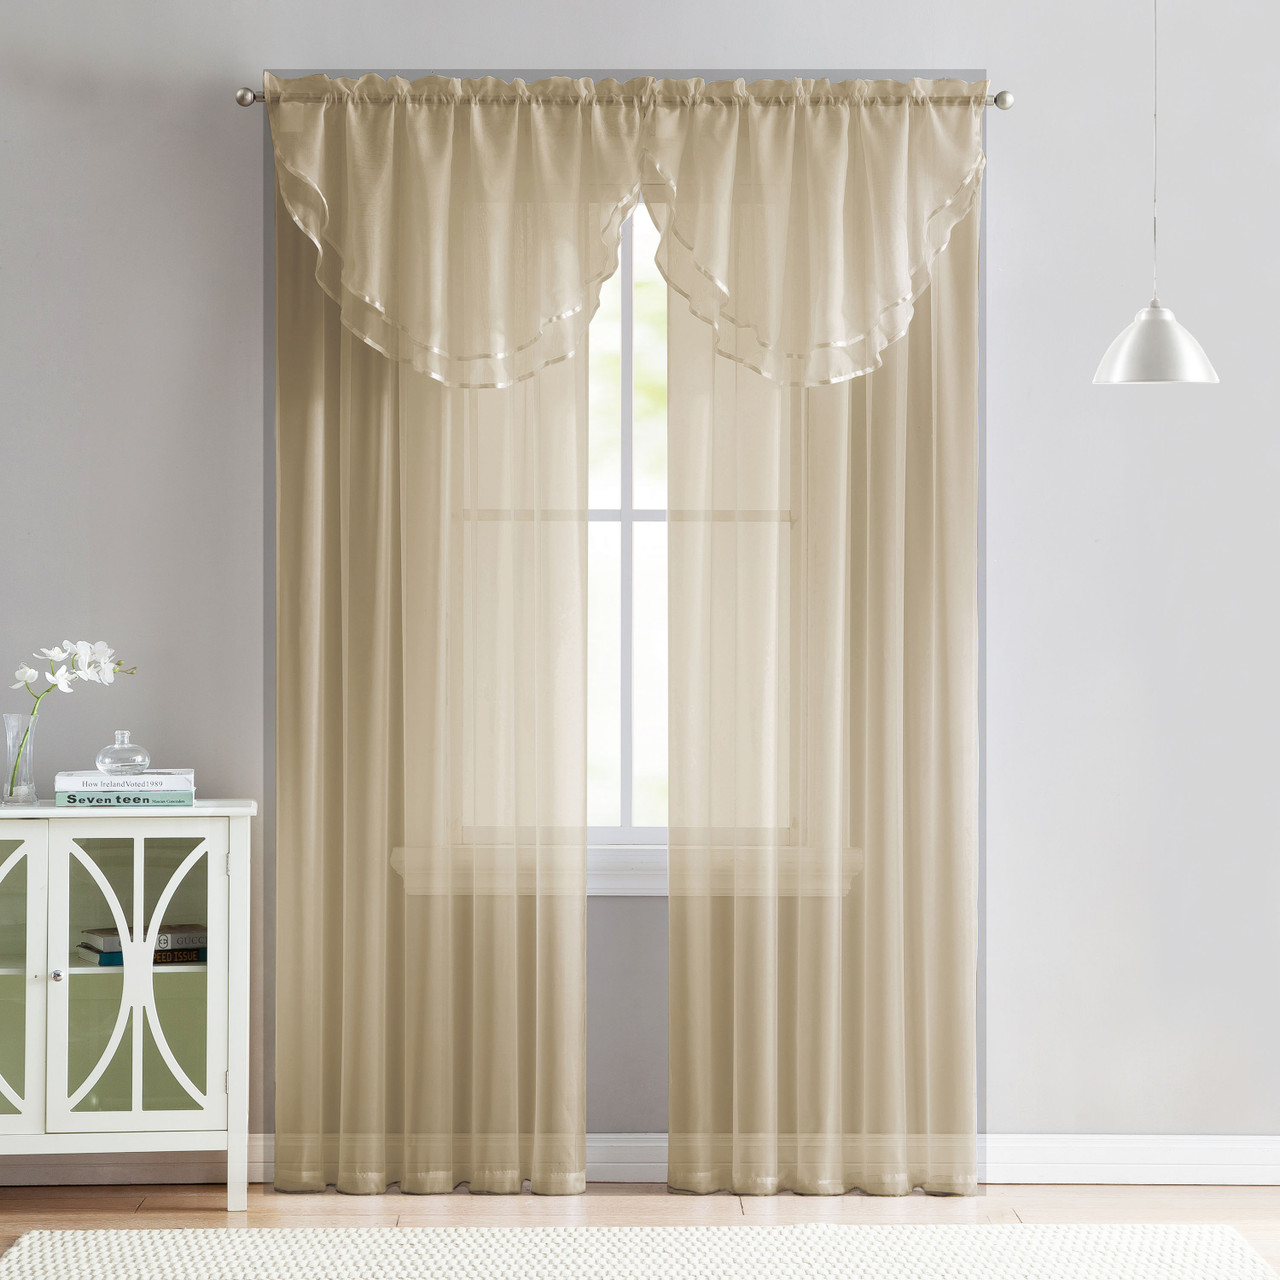 4 Piece Sheer Window Curtain Set For Living Room Dining Room Bay Windows 2 Voile Valance Curtains And 2 Panels 90 In Long Taupe My Infinity Store